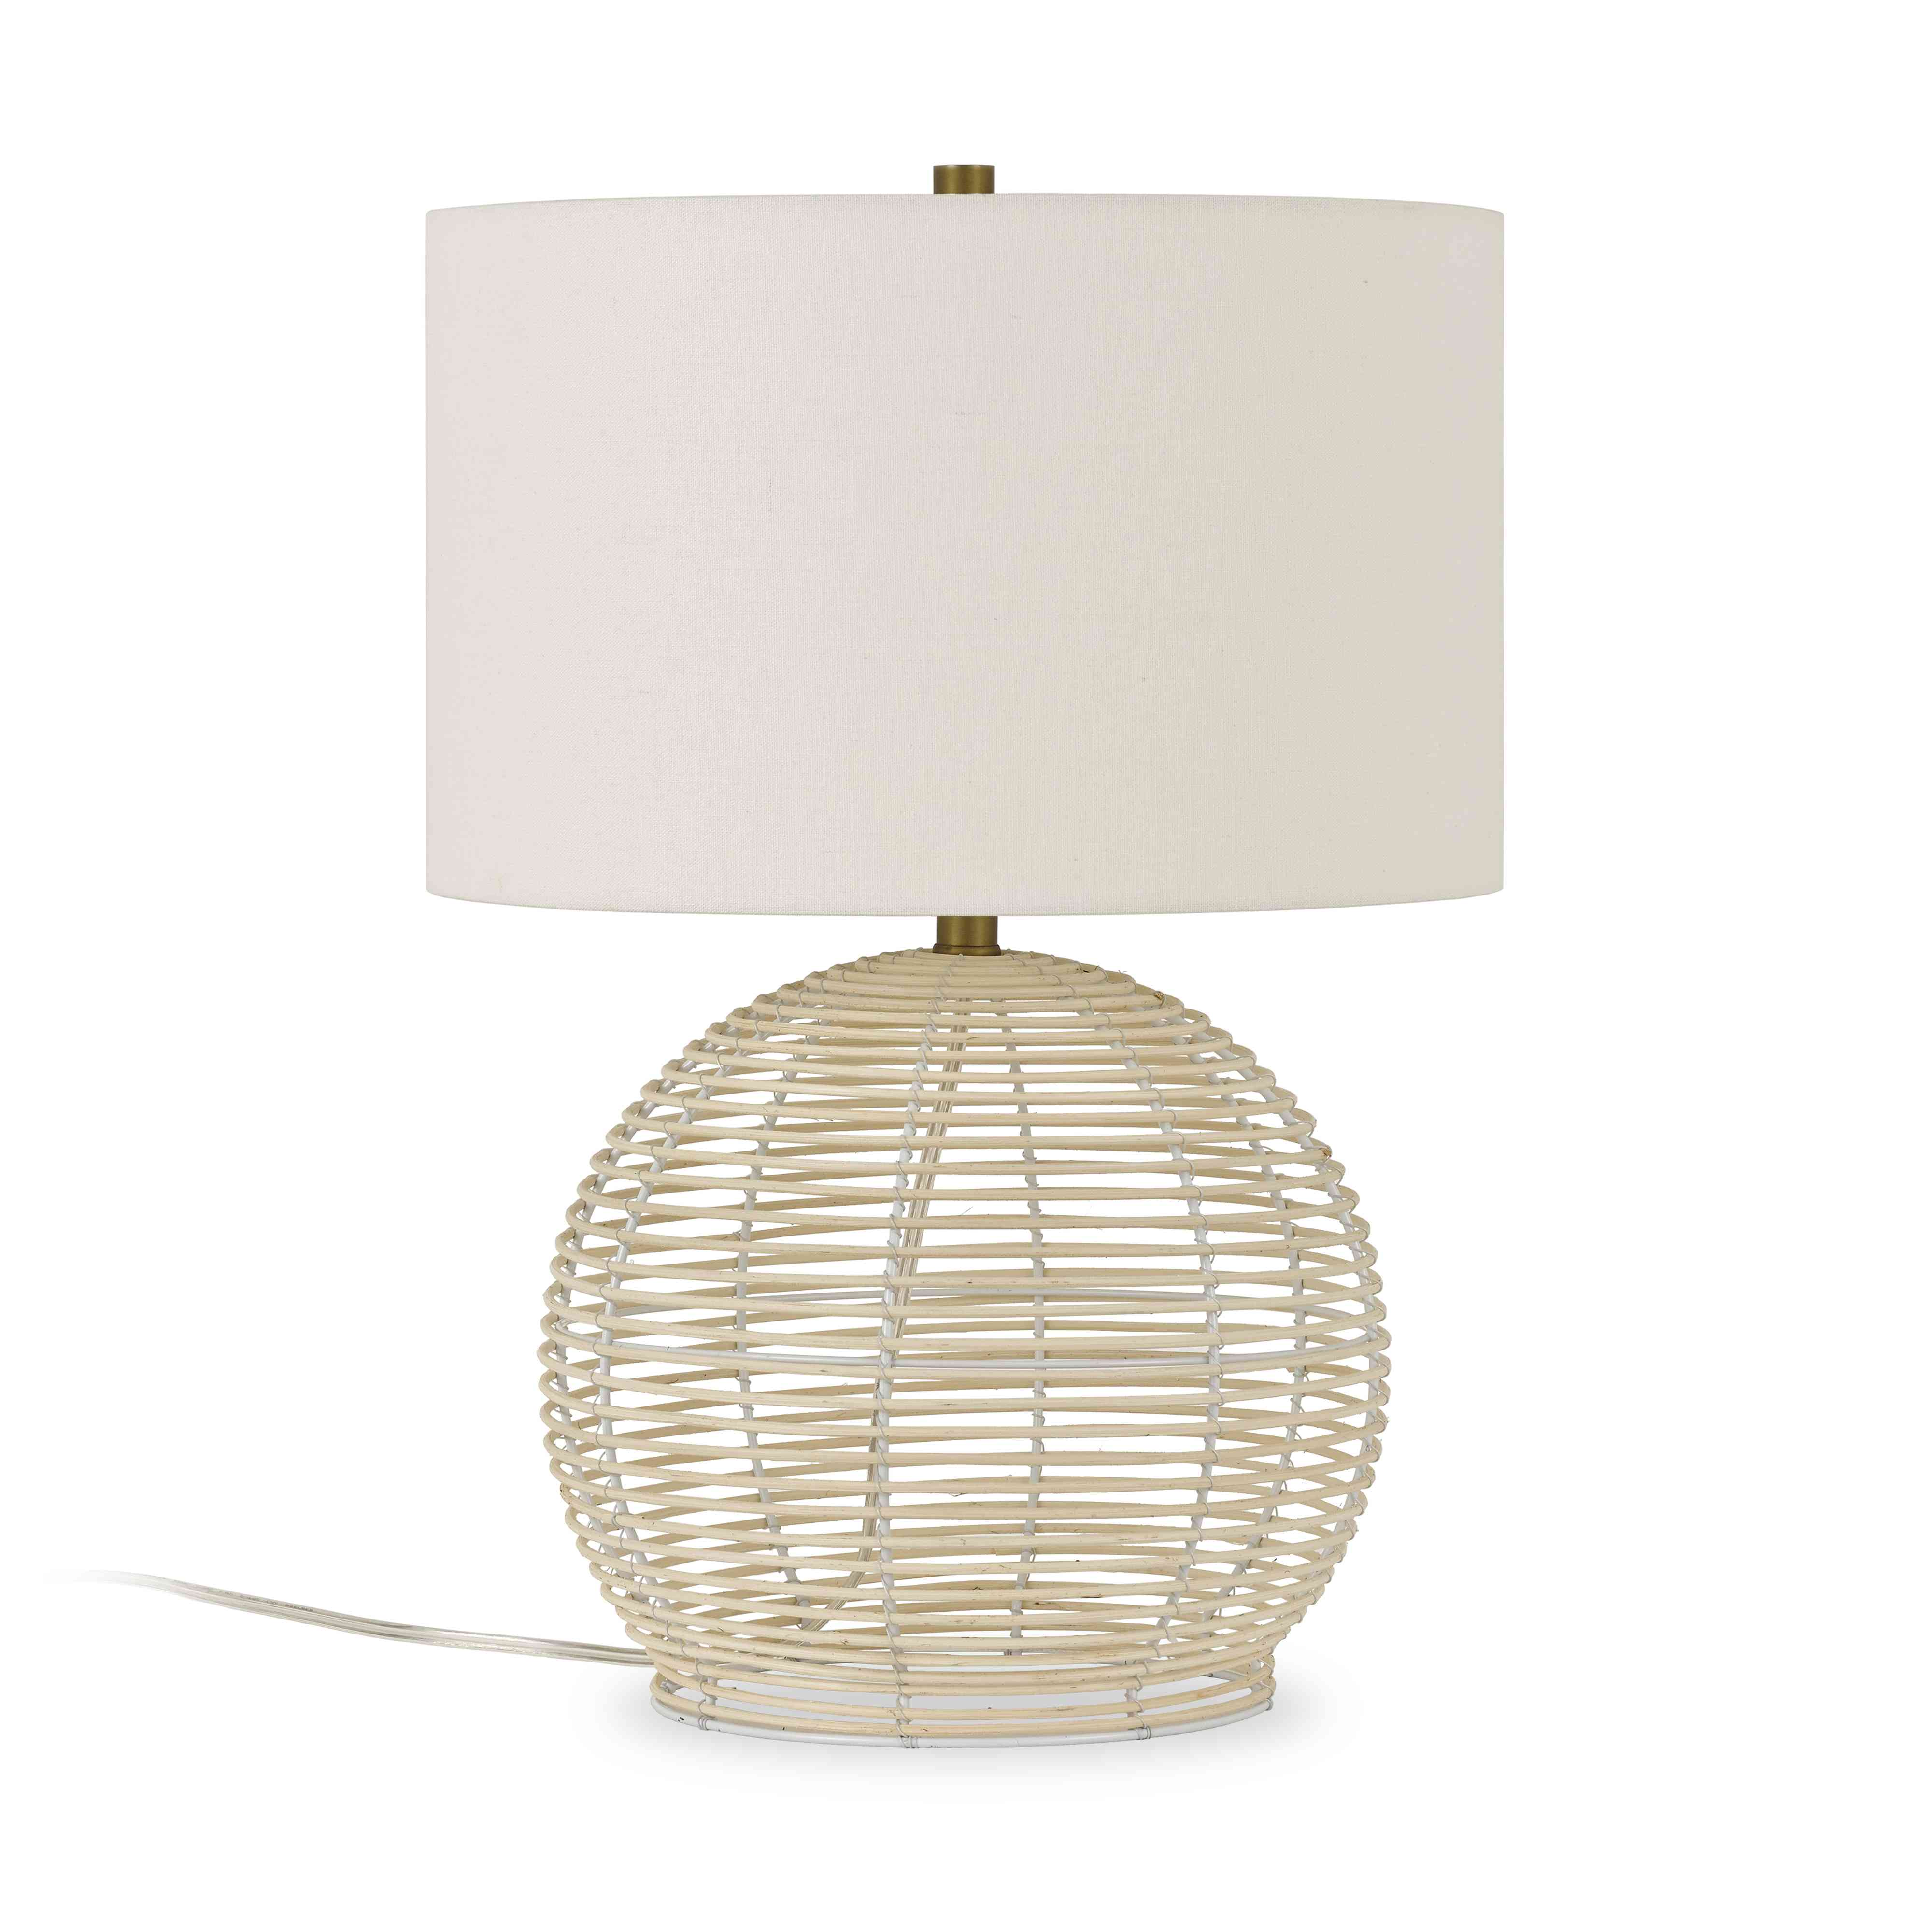 Rattan lamp with white lampshade